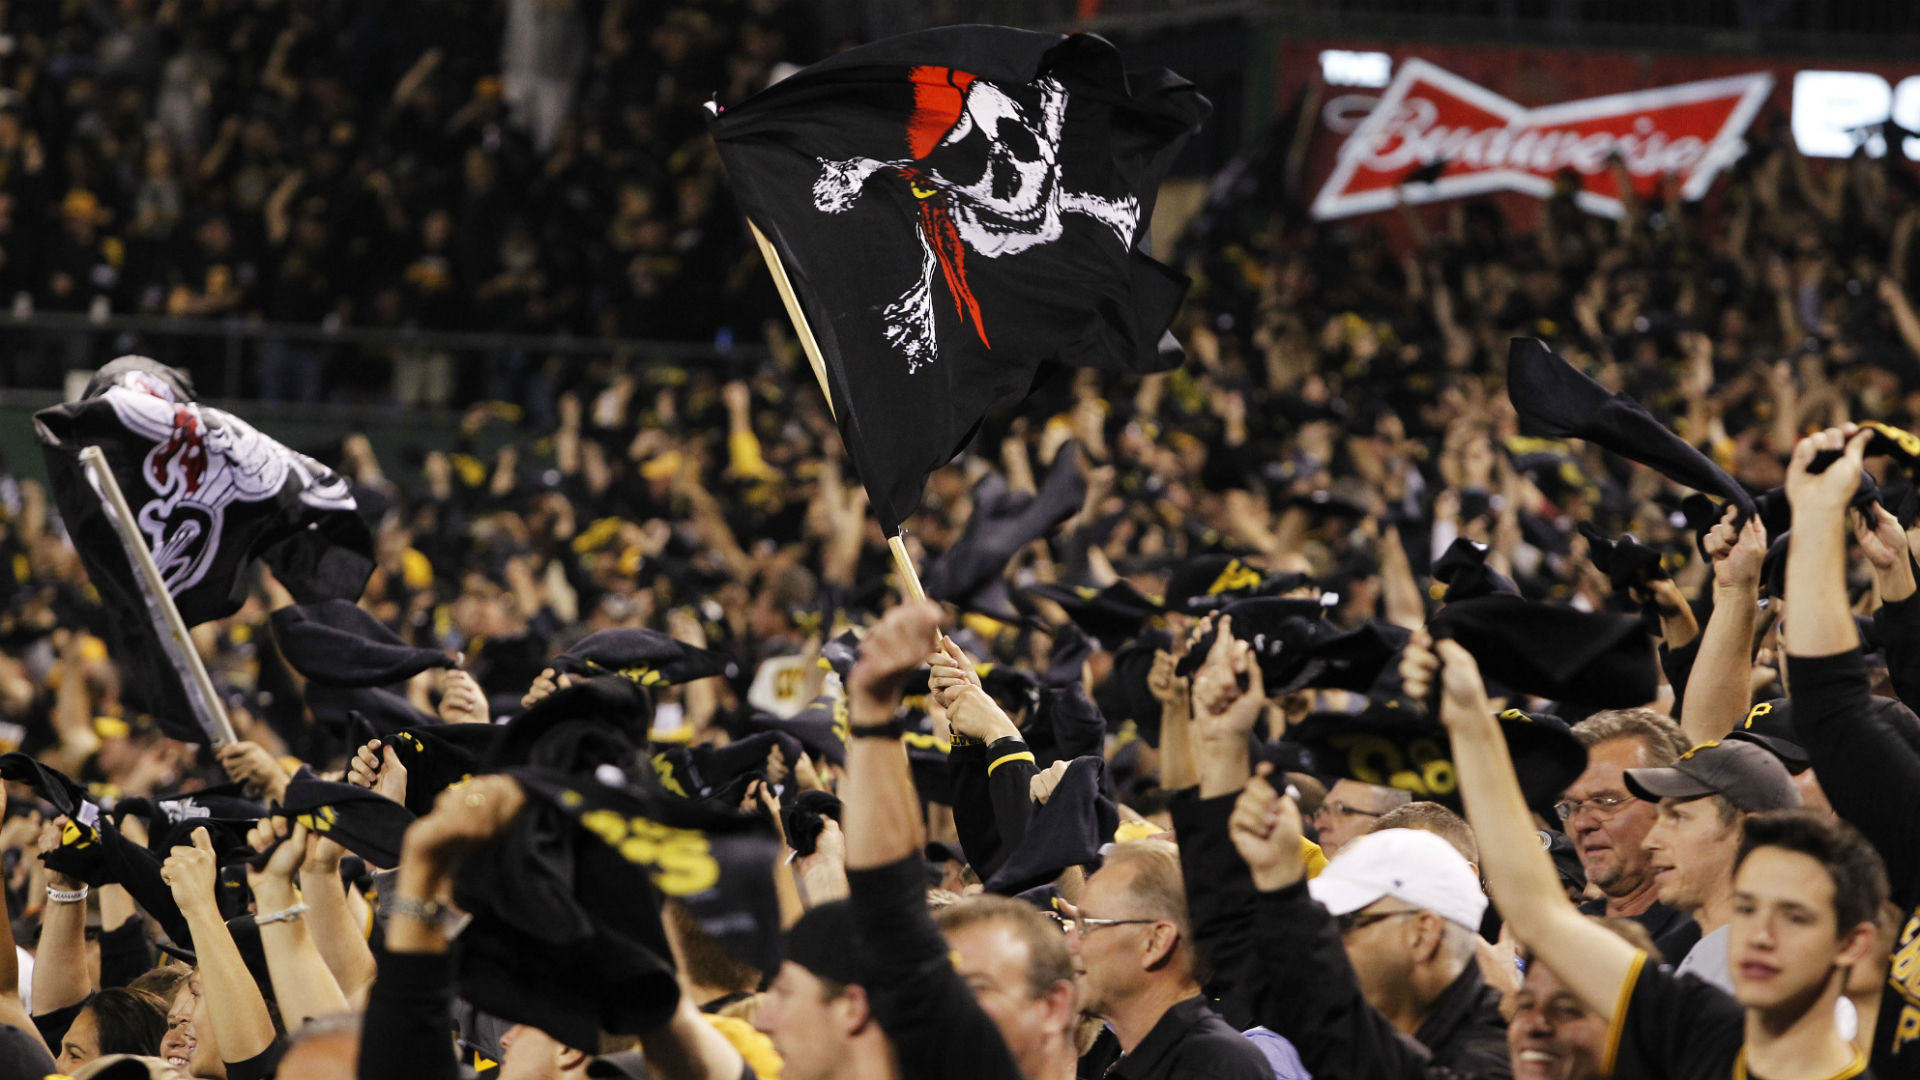 Pirates fans at 2014 wild-card game